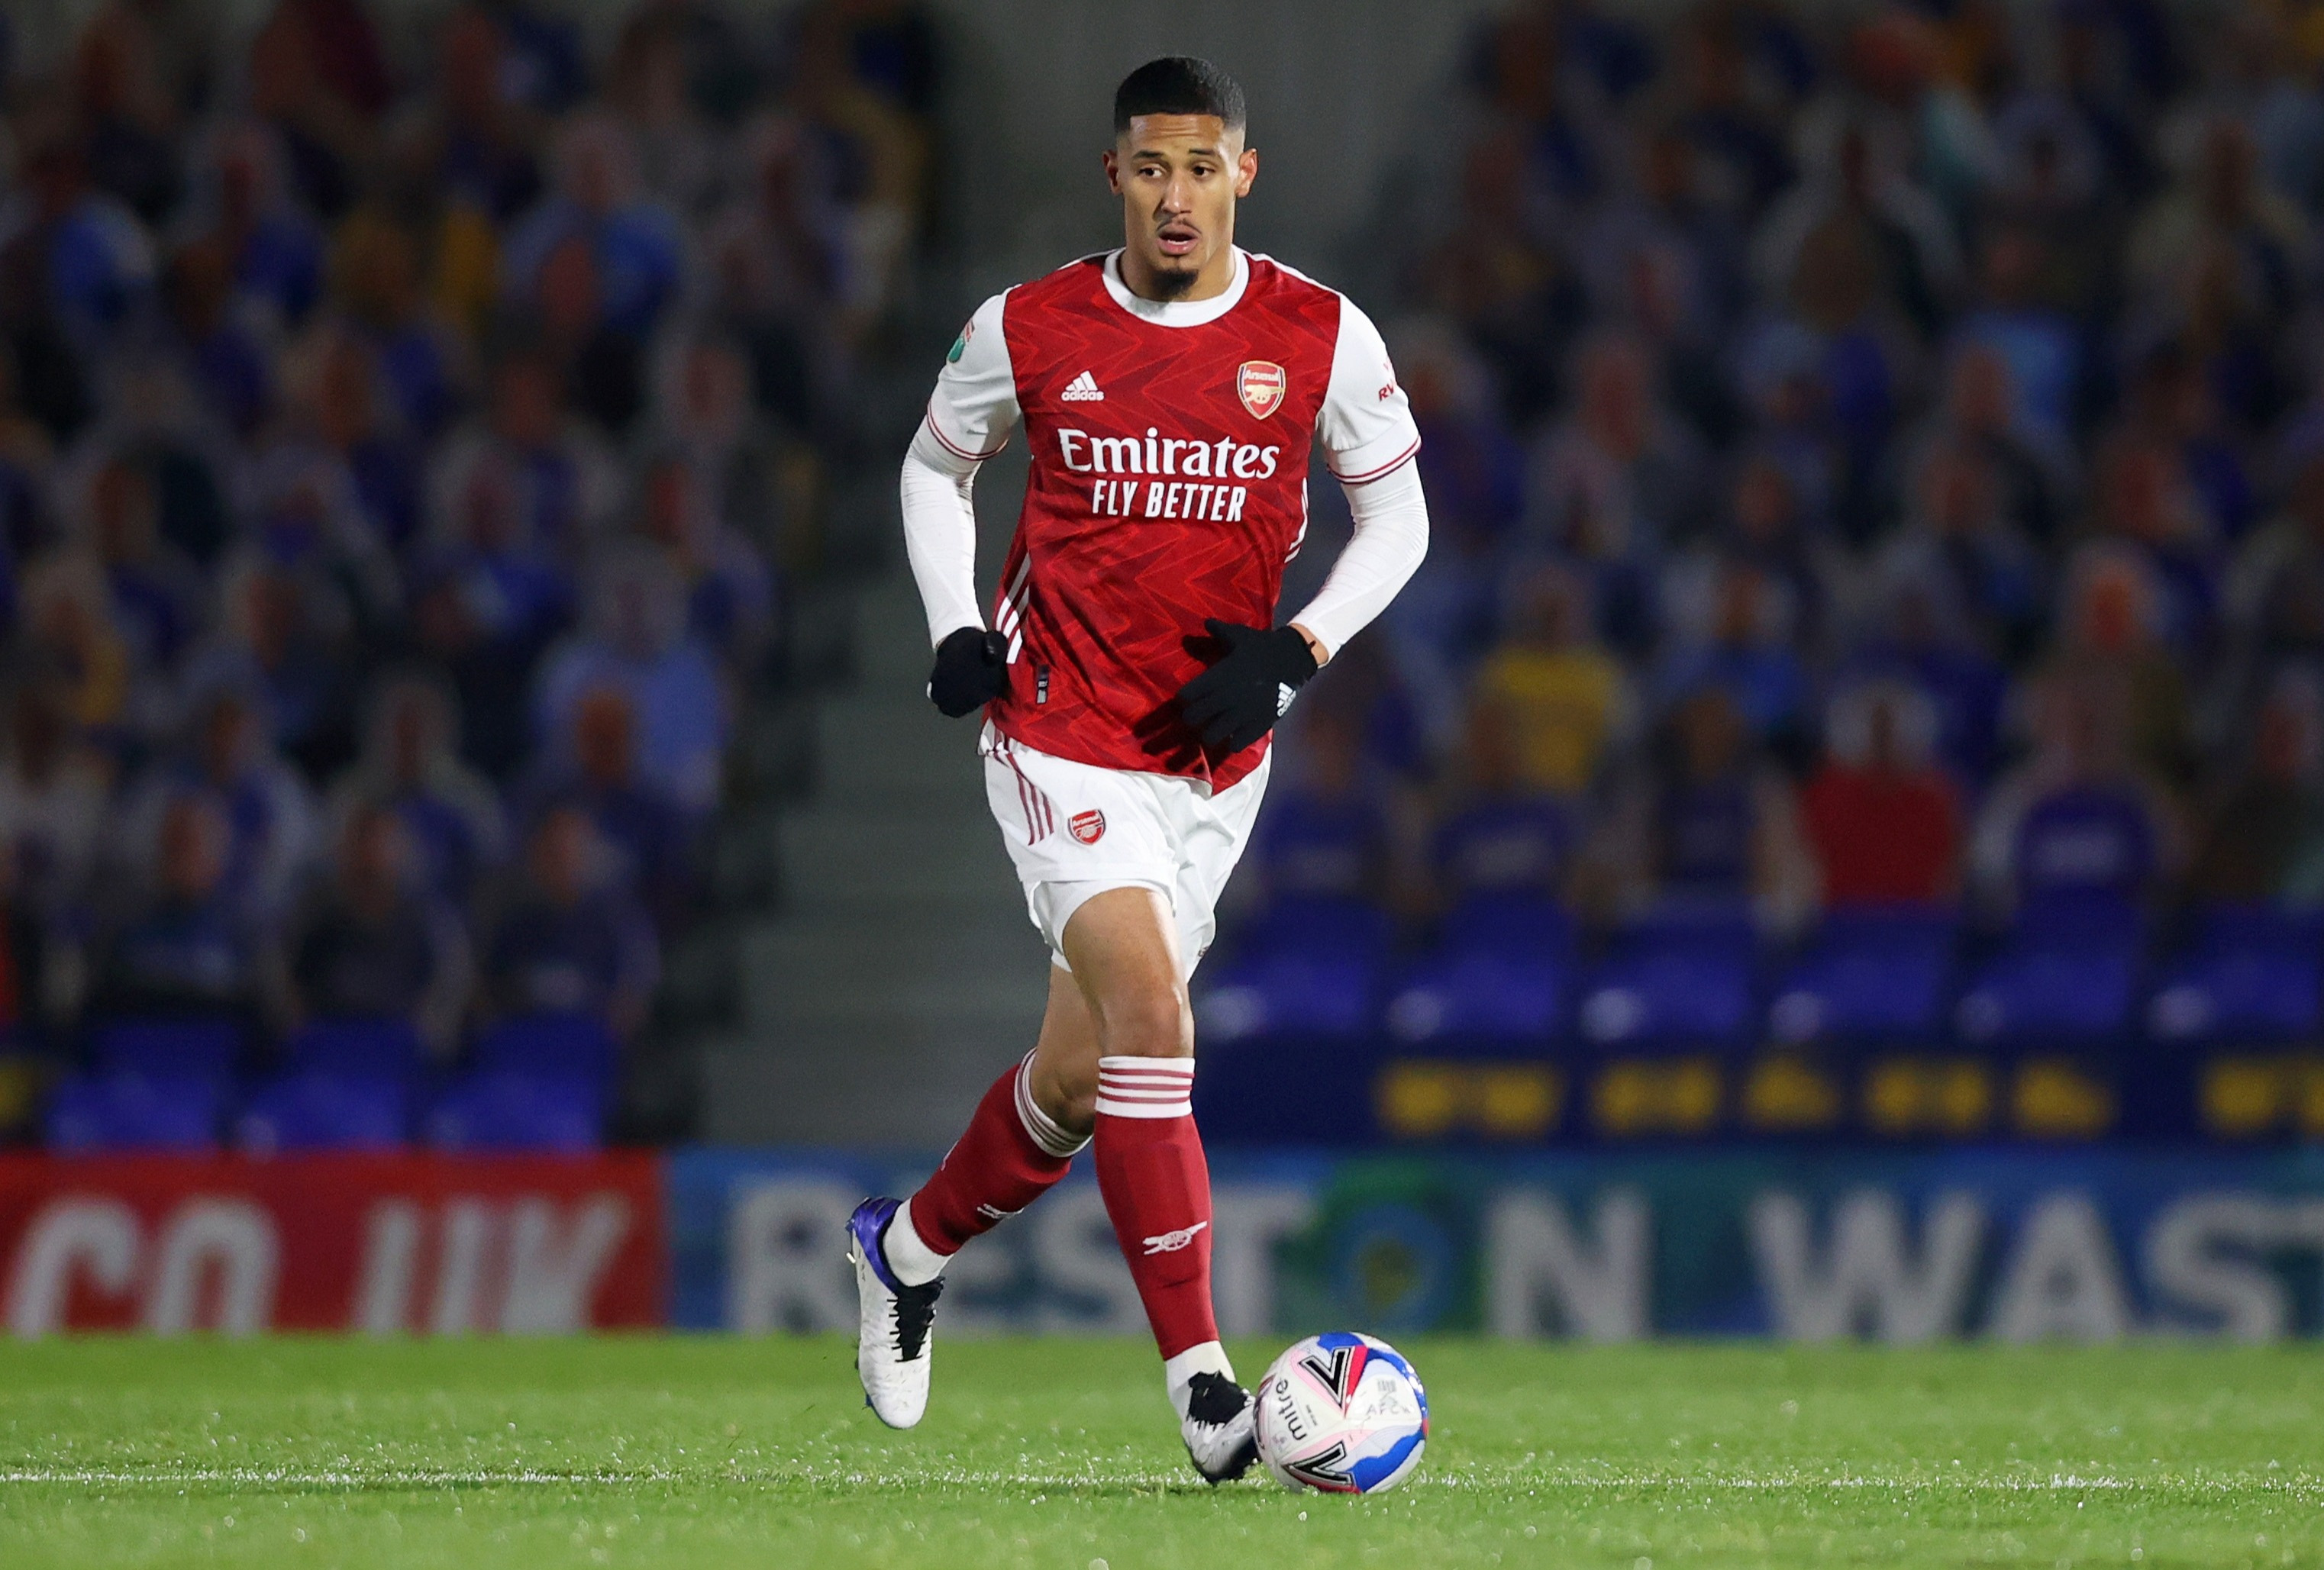 William Saliba is still yet to make his competitive debut for the Gunners